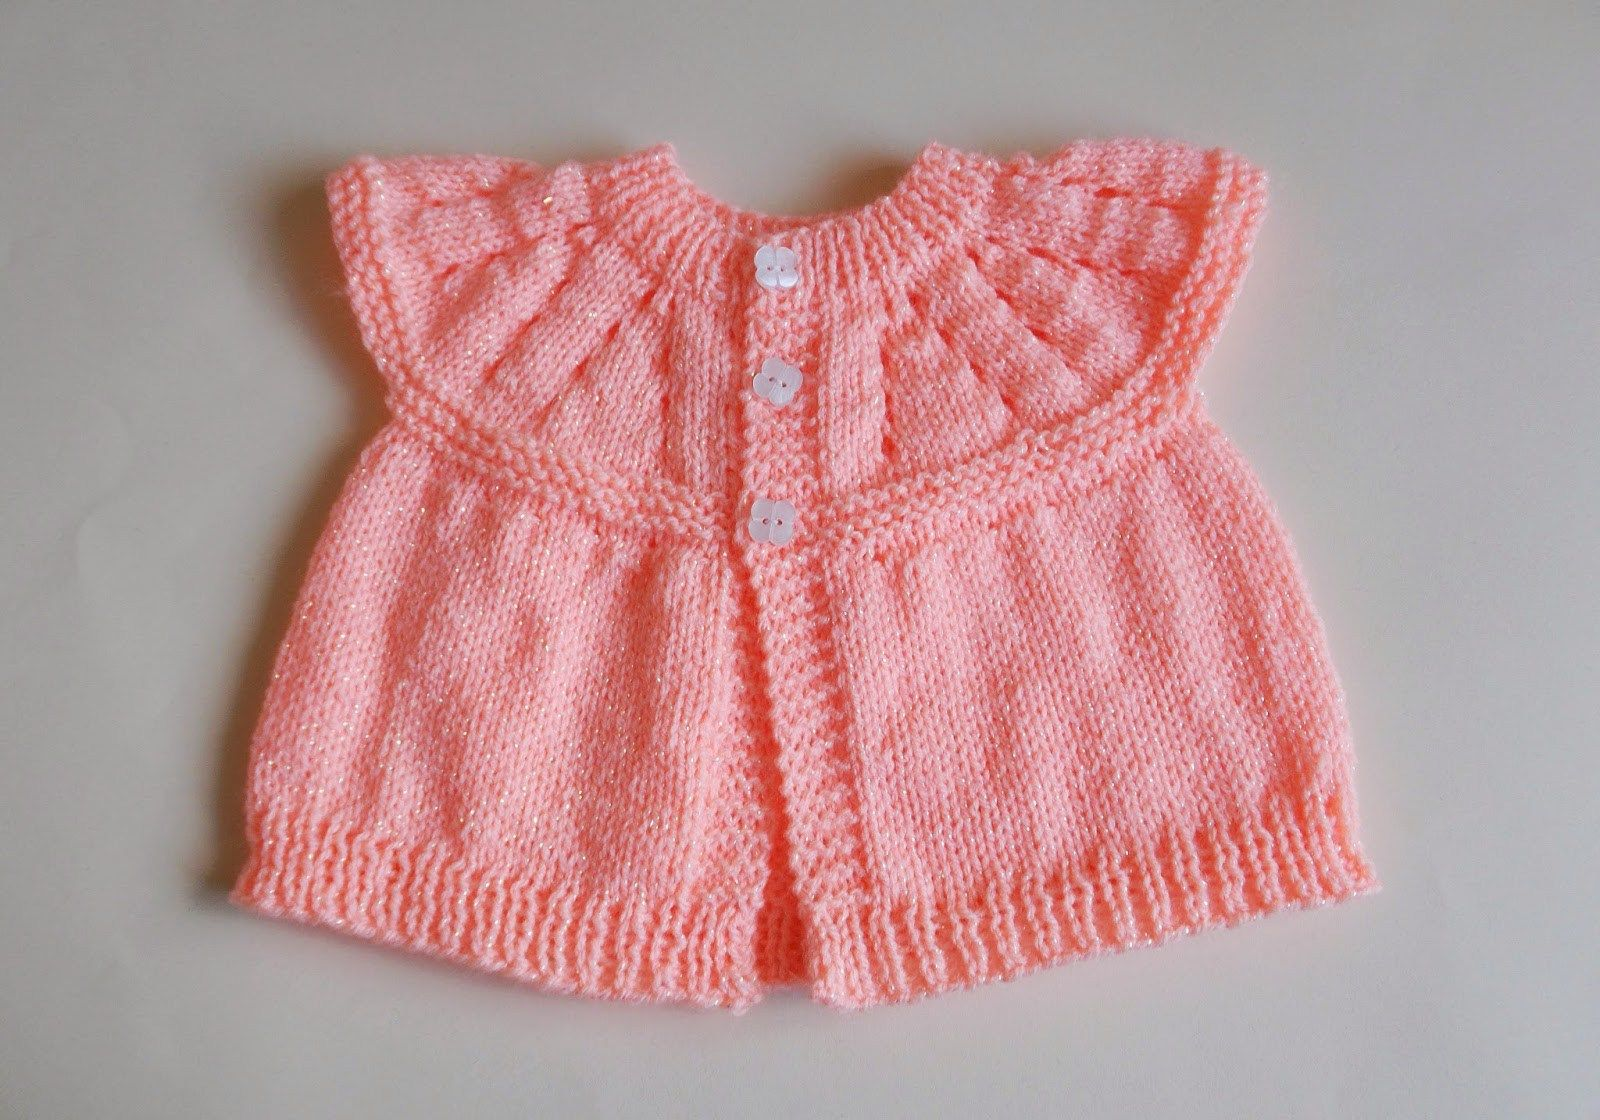 All In One Baby Top free knitting pattern | baby projects ...